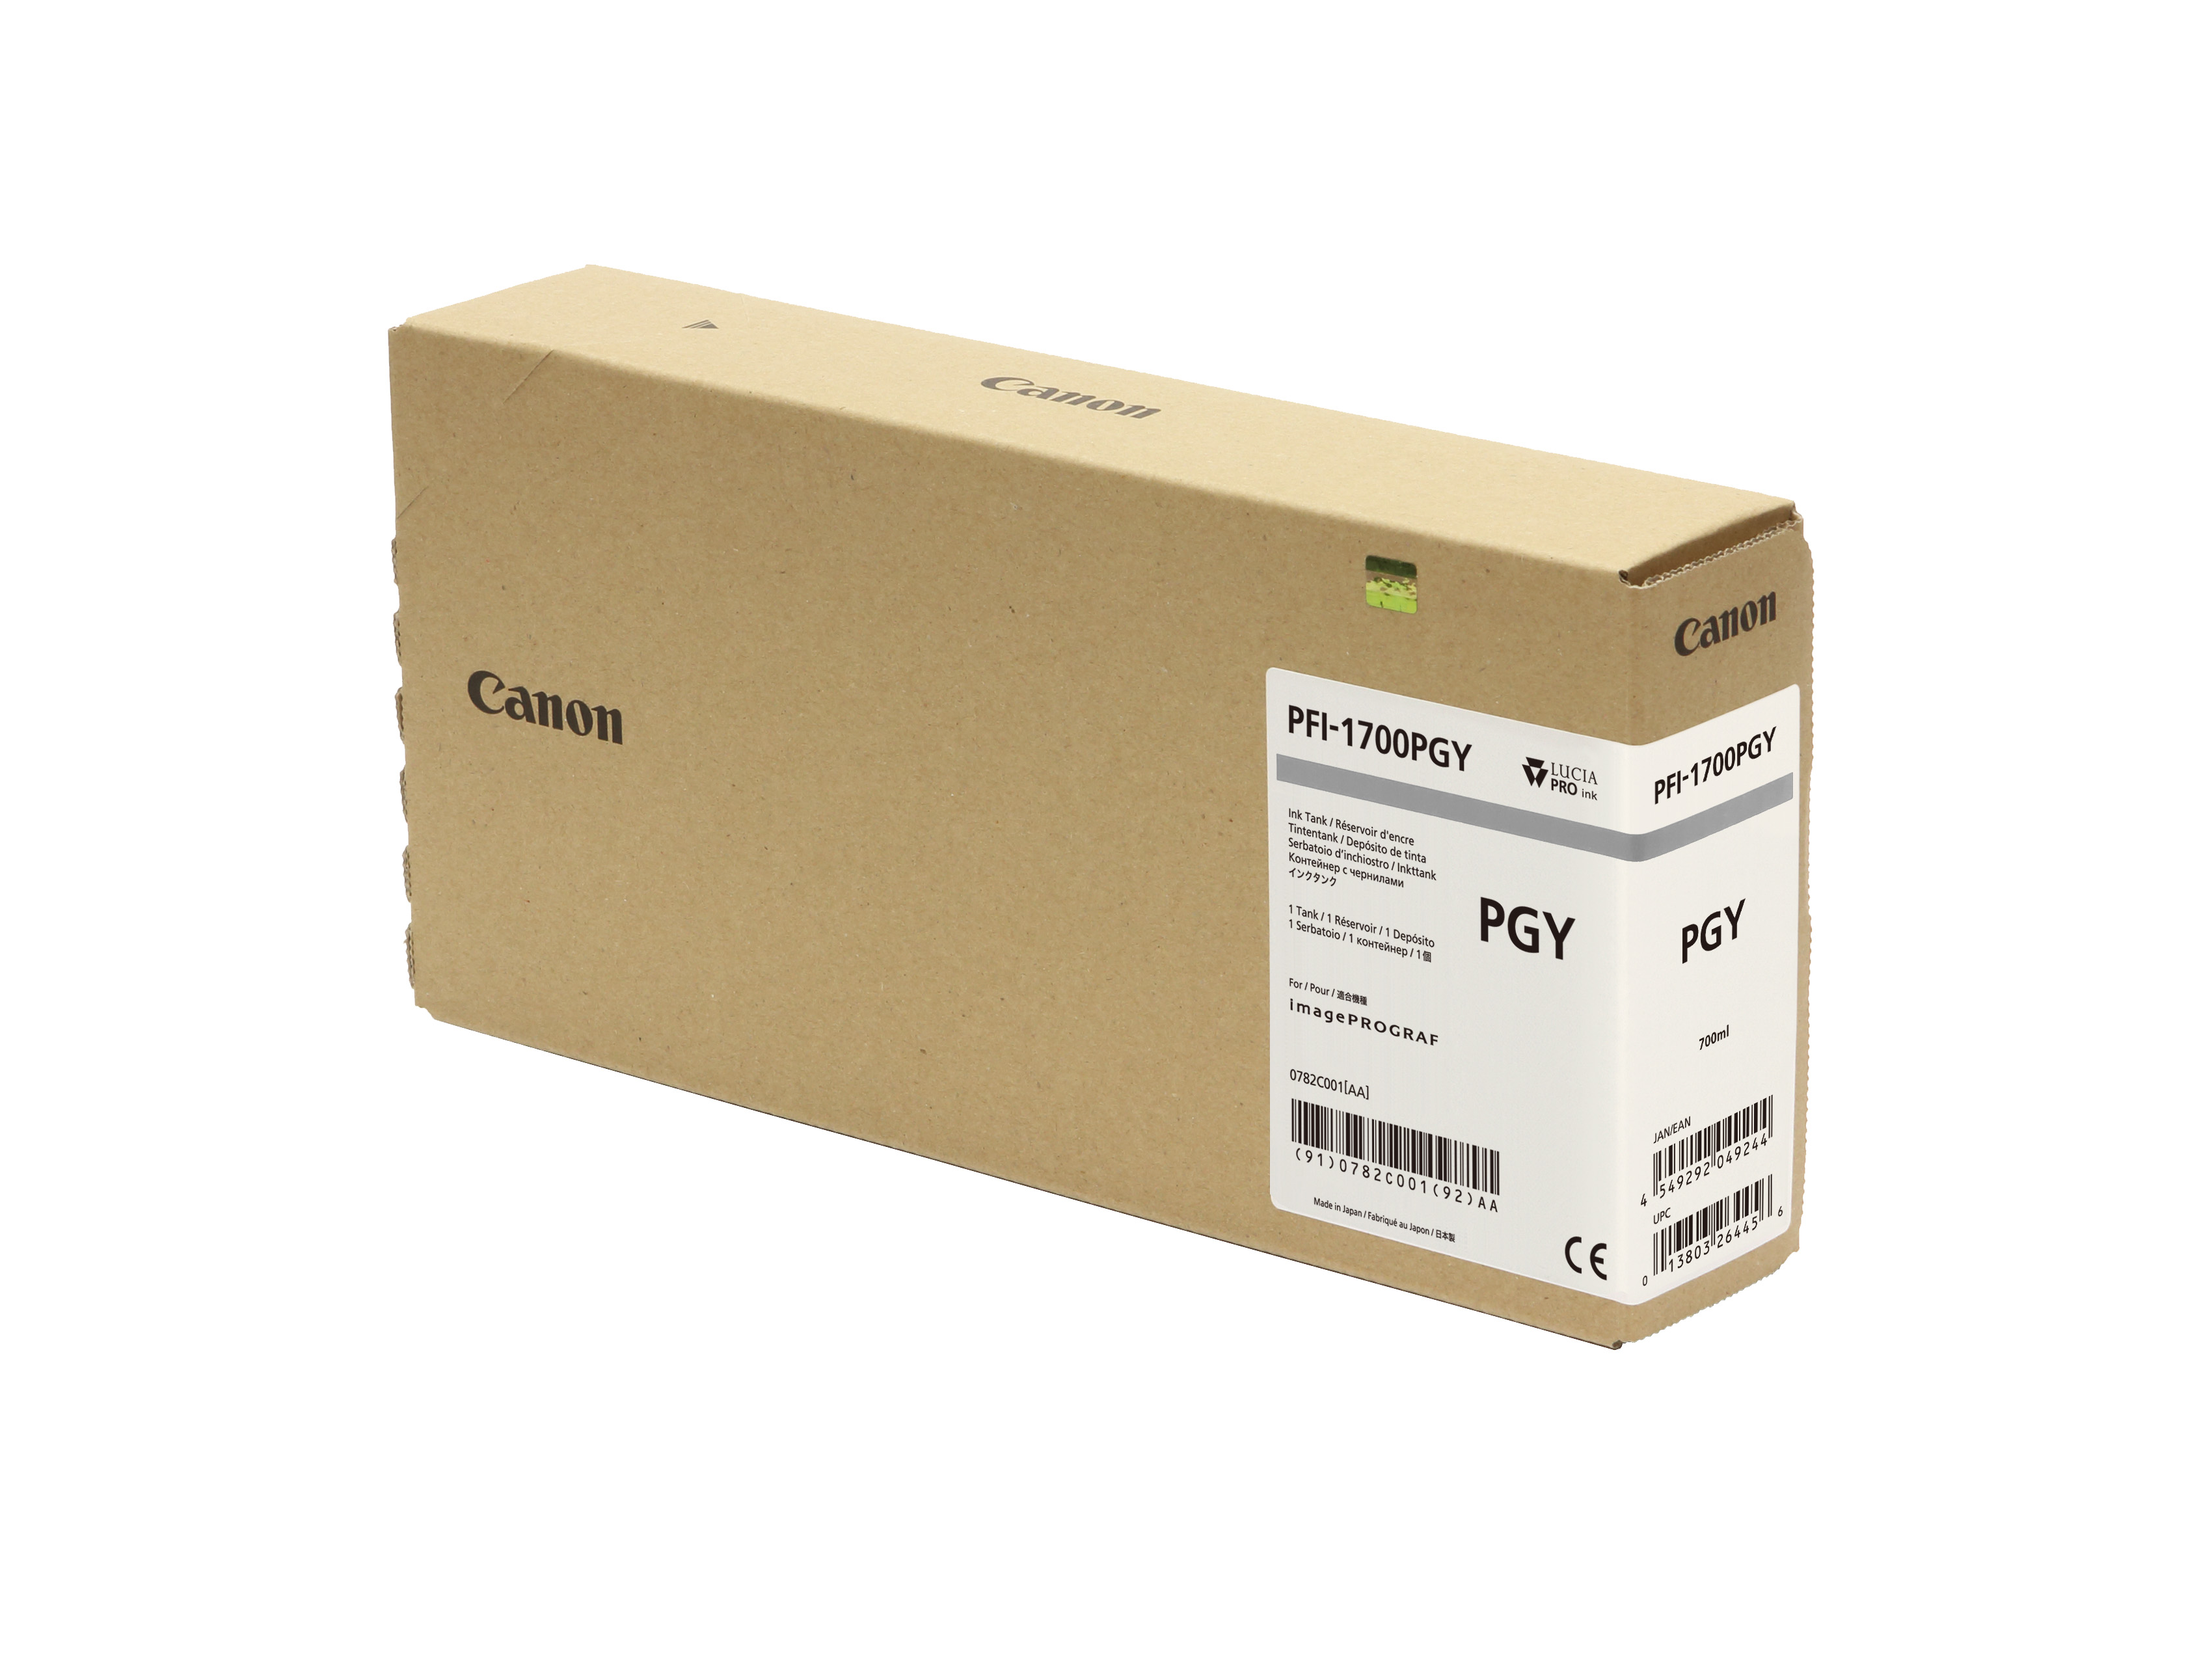 Canon PFI-1700PGY Photo Grey Ink Tank - 700ml Cartridge - for Canon PRO-2000, PRO-4000 Printers - 0782C001AA - next day delivery from GDS Graphic Design Supplies Ltd